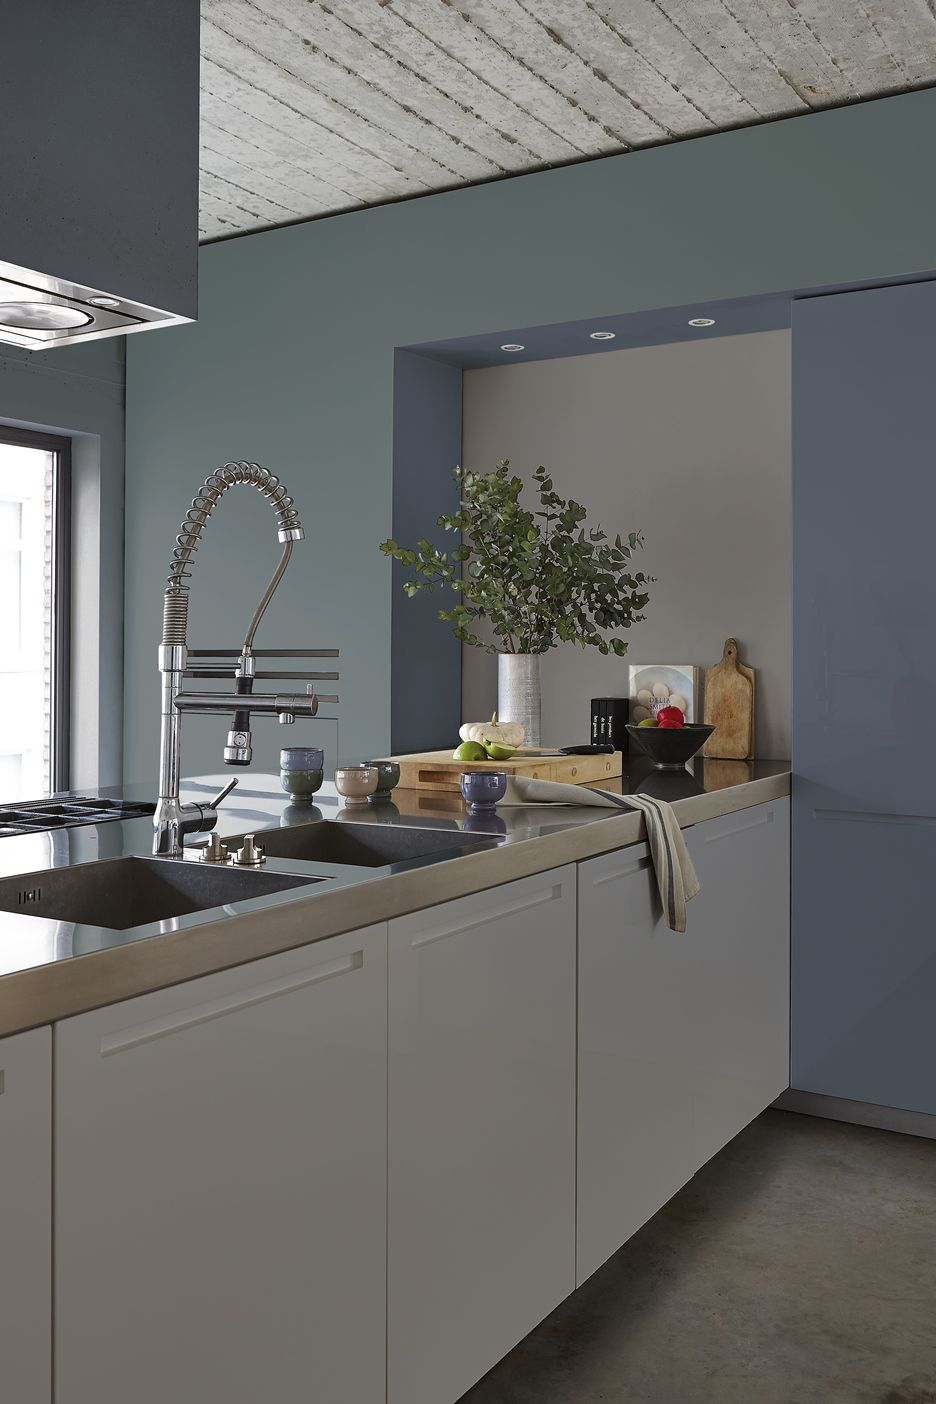 de koele accentkleur inflatable blue geeft een modern contrast modern industrial kitchen in cool colors